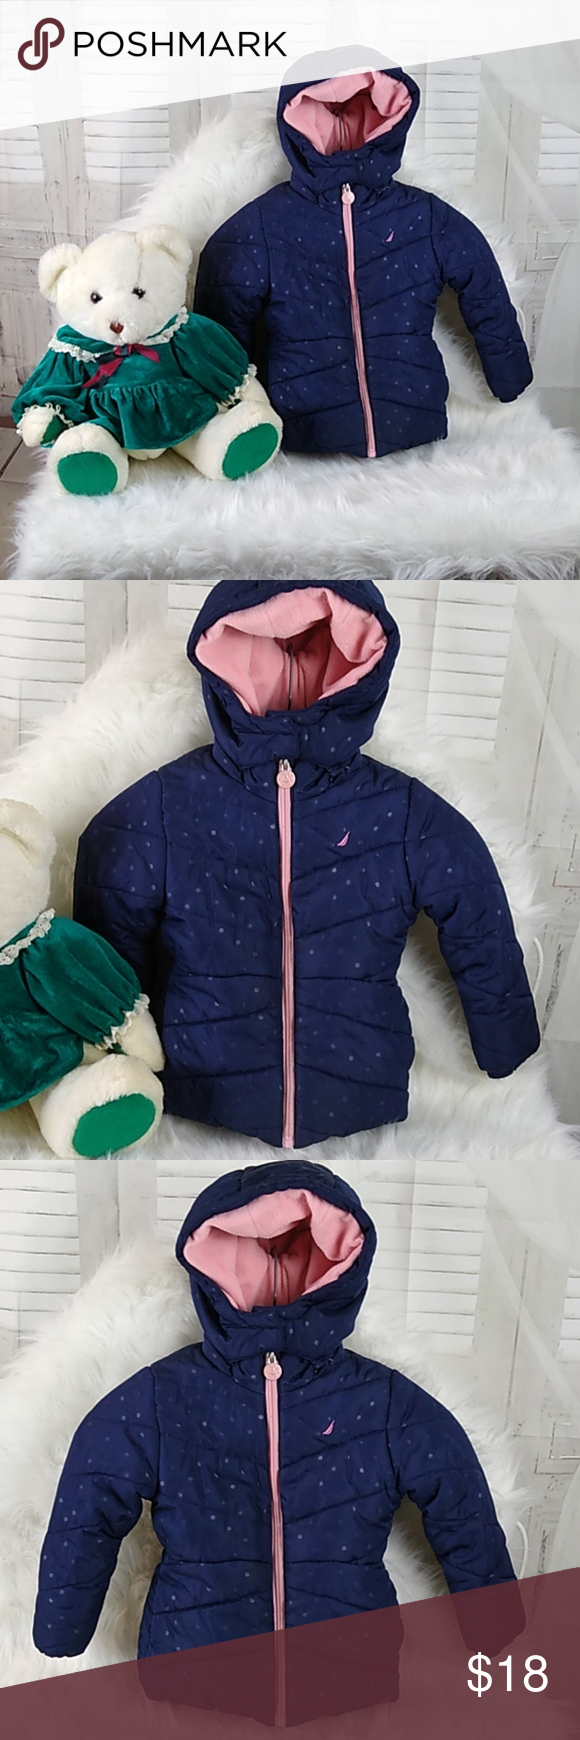 Nautica 3 T Puffer Jacket Nautica 3 T Puffer Jacket Excellent Condition Removable Hood Side Pockets Comes With Christmas B Clothes Design Jackets Puffer Coat [ 1740 x 580 Pixel ]